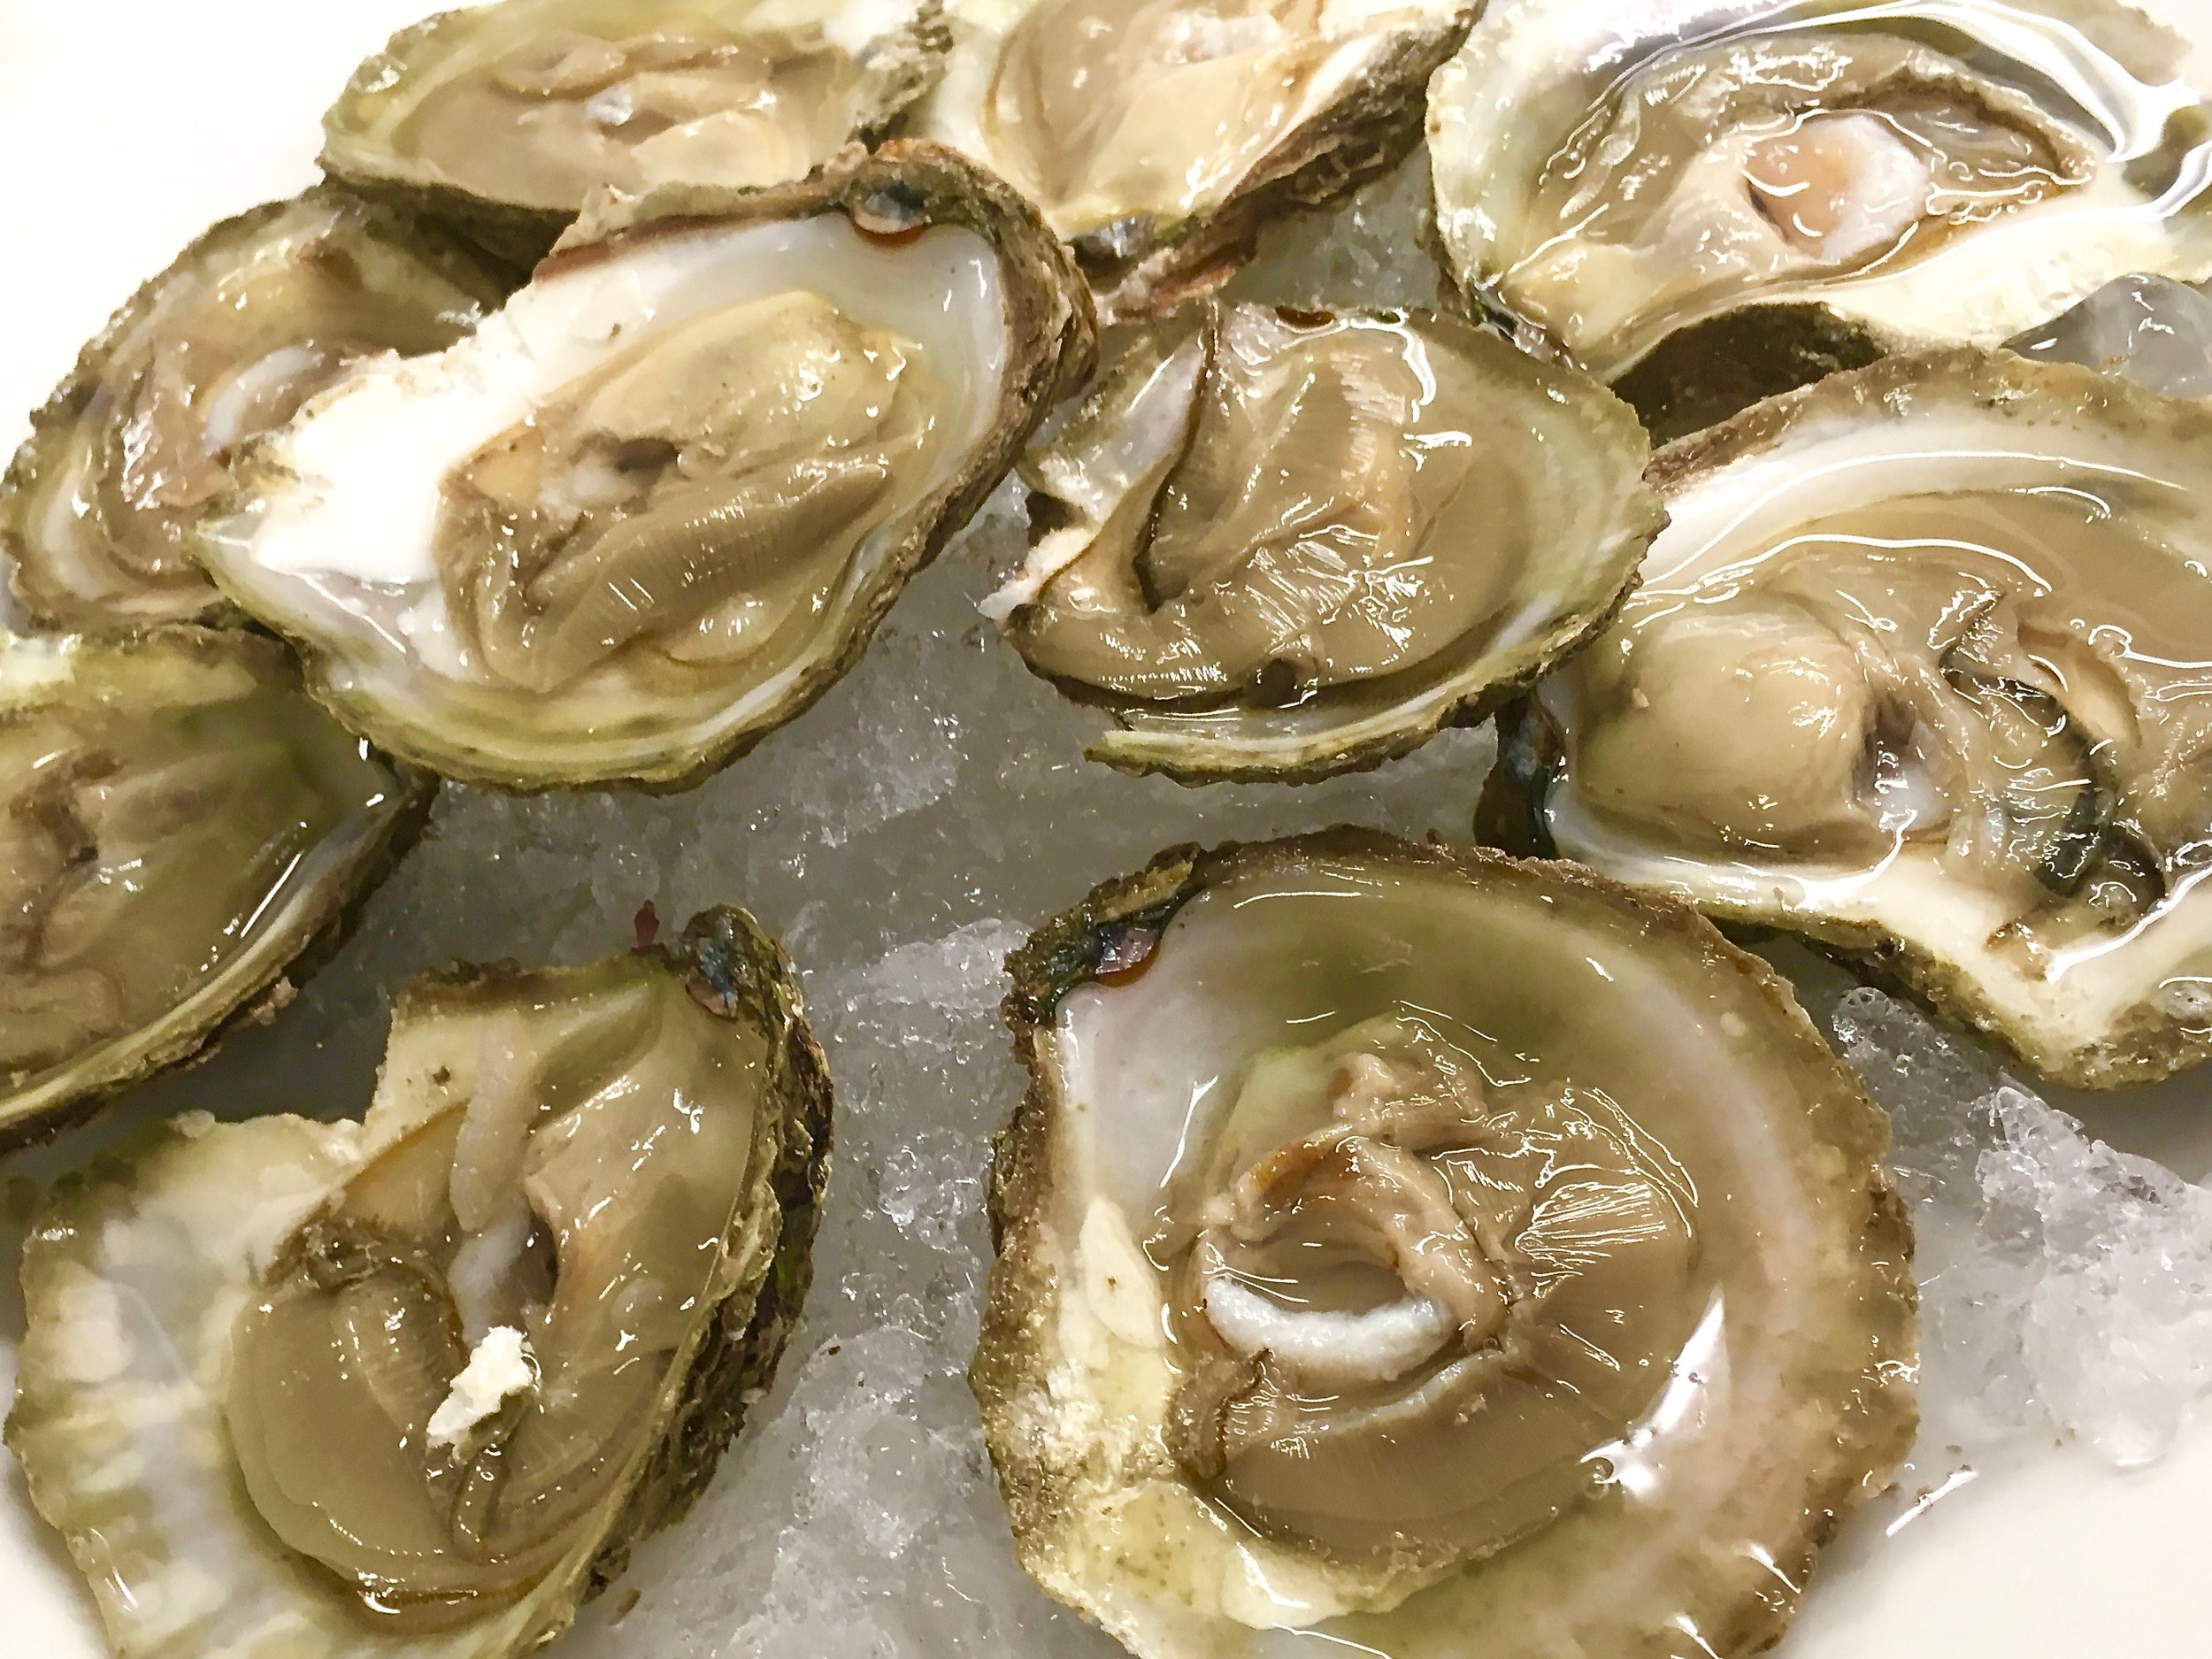 Oysters native to British shores